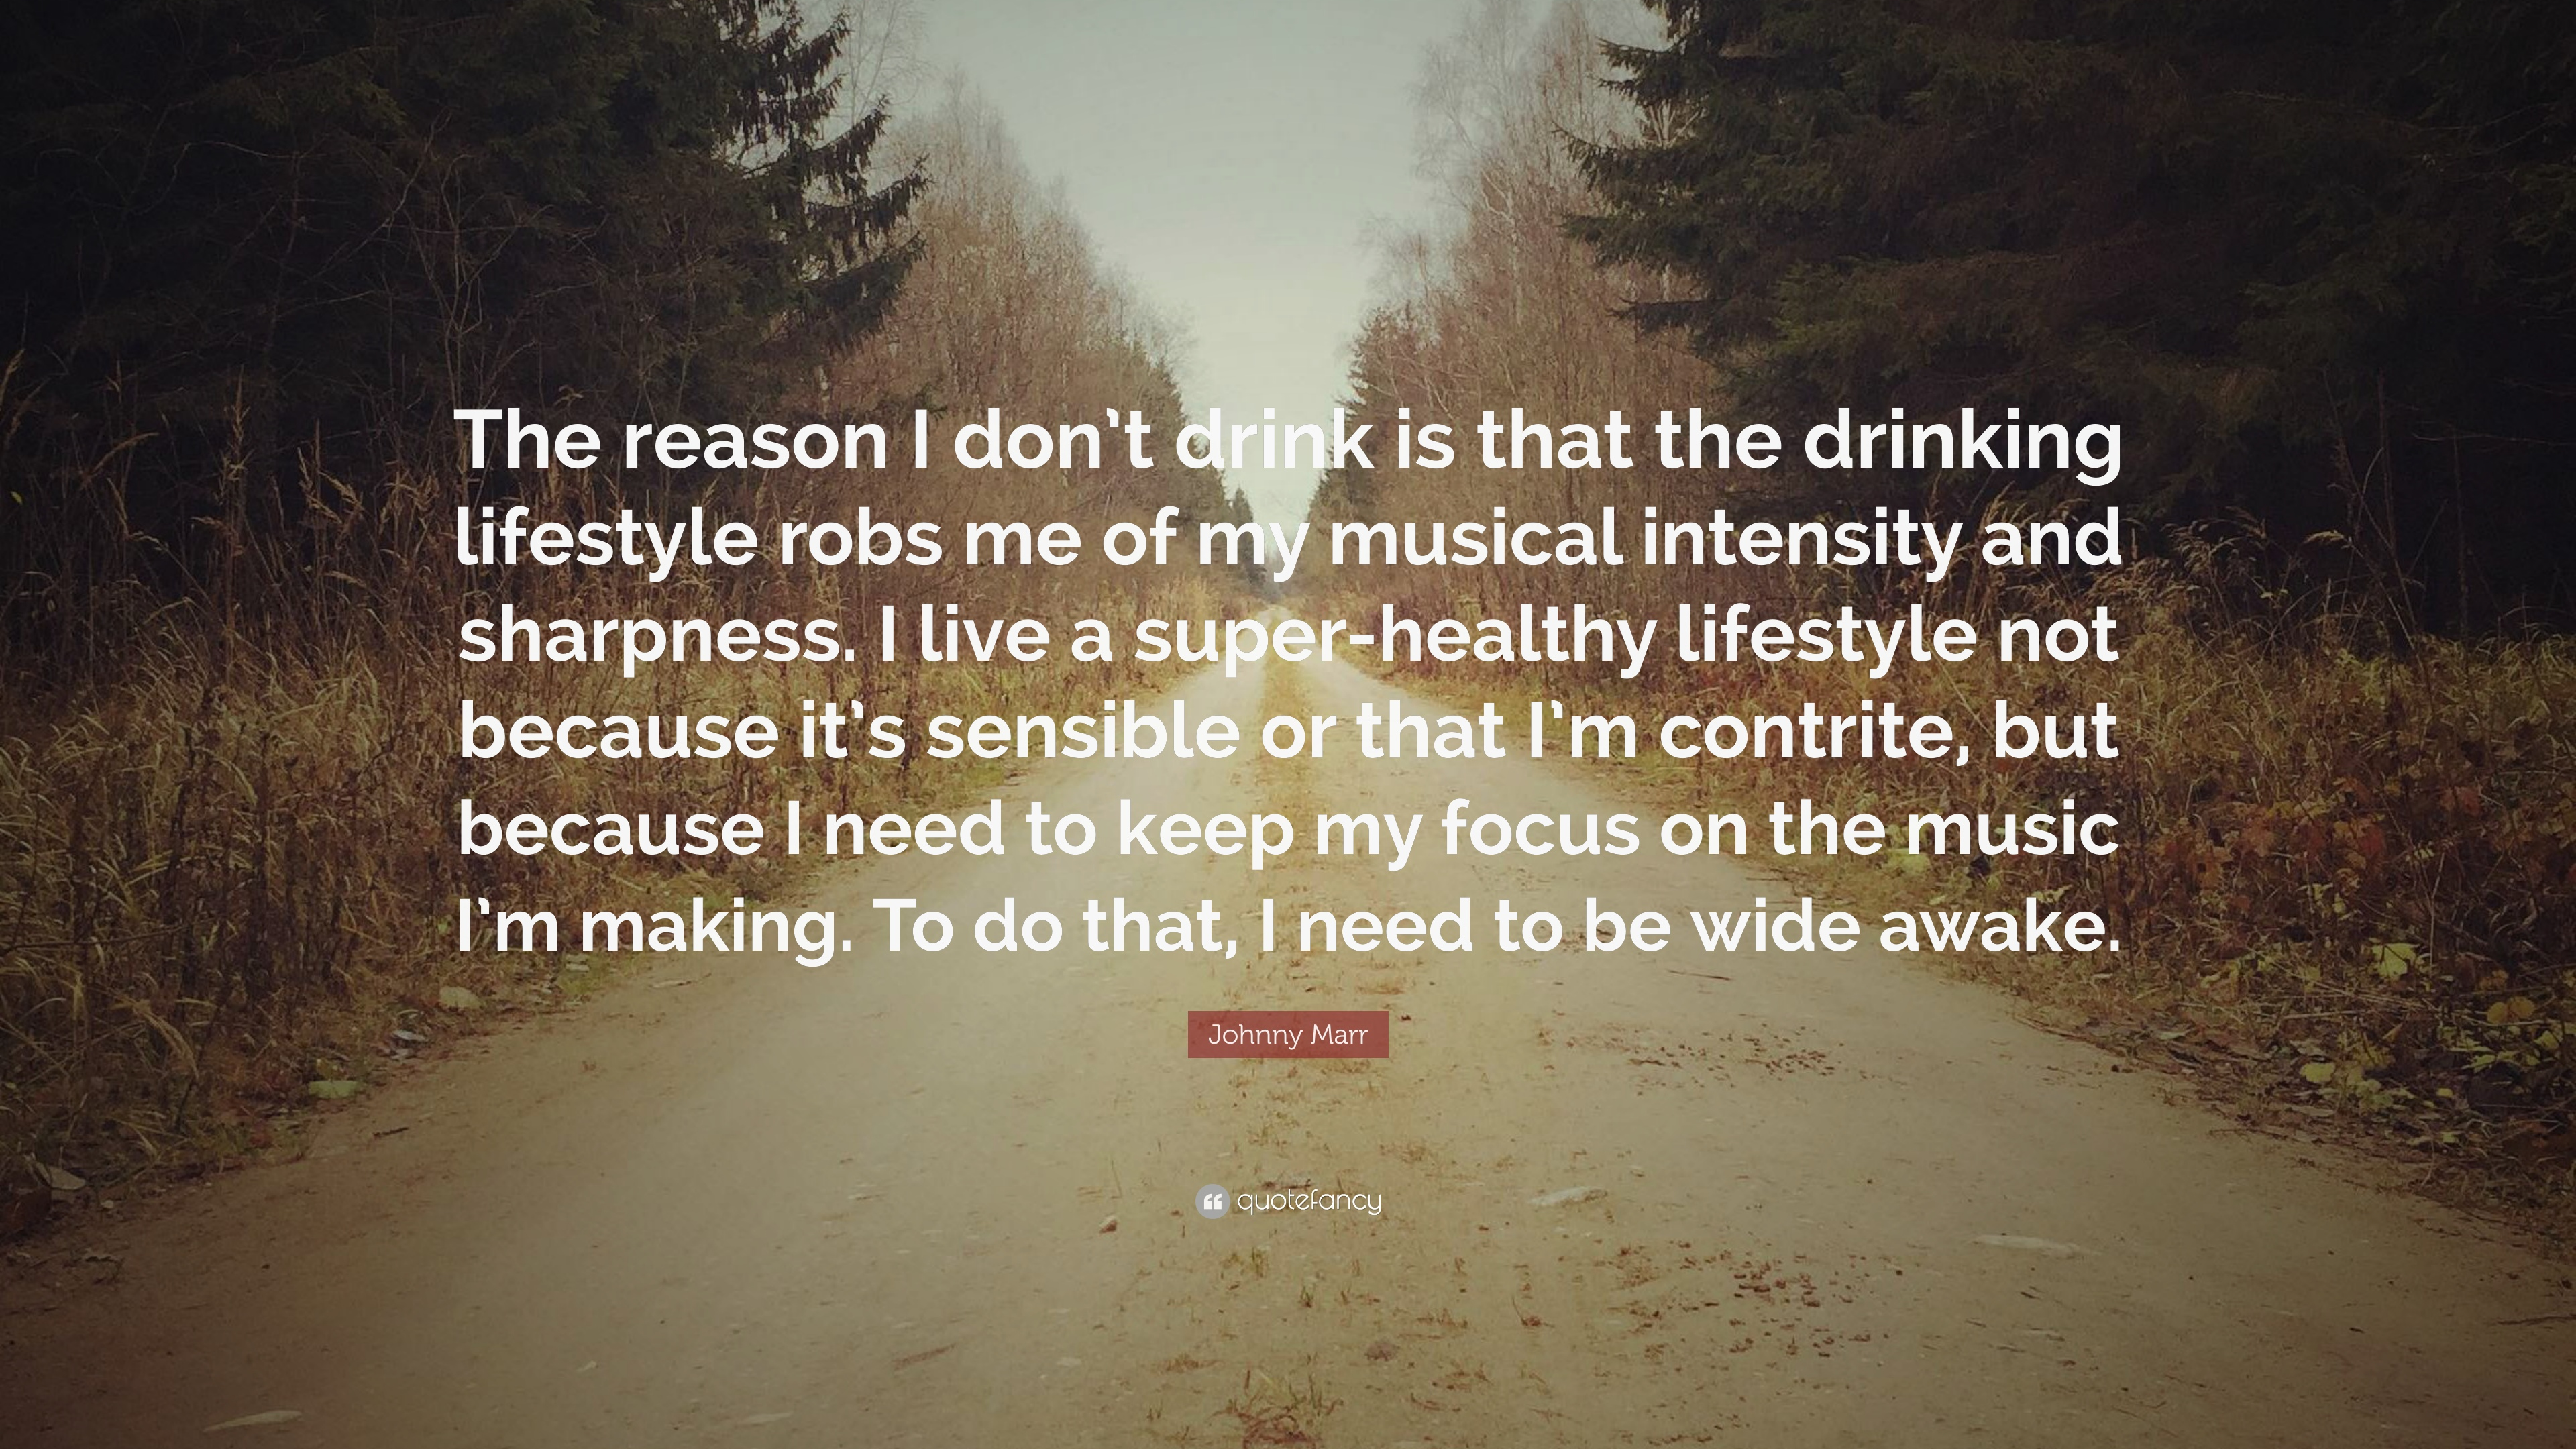 johnny marr quotes quotefancy johnny marr quote the reason i don t drink is that the drinking